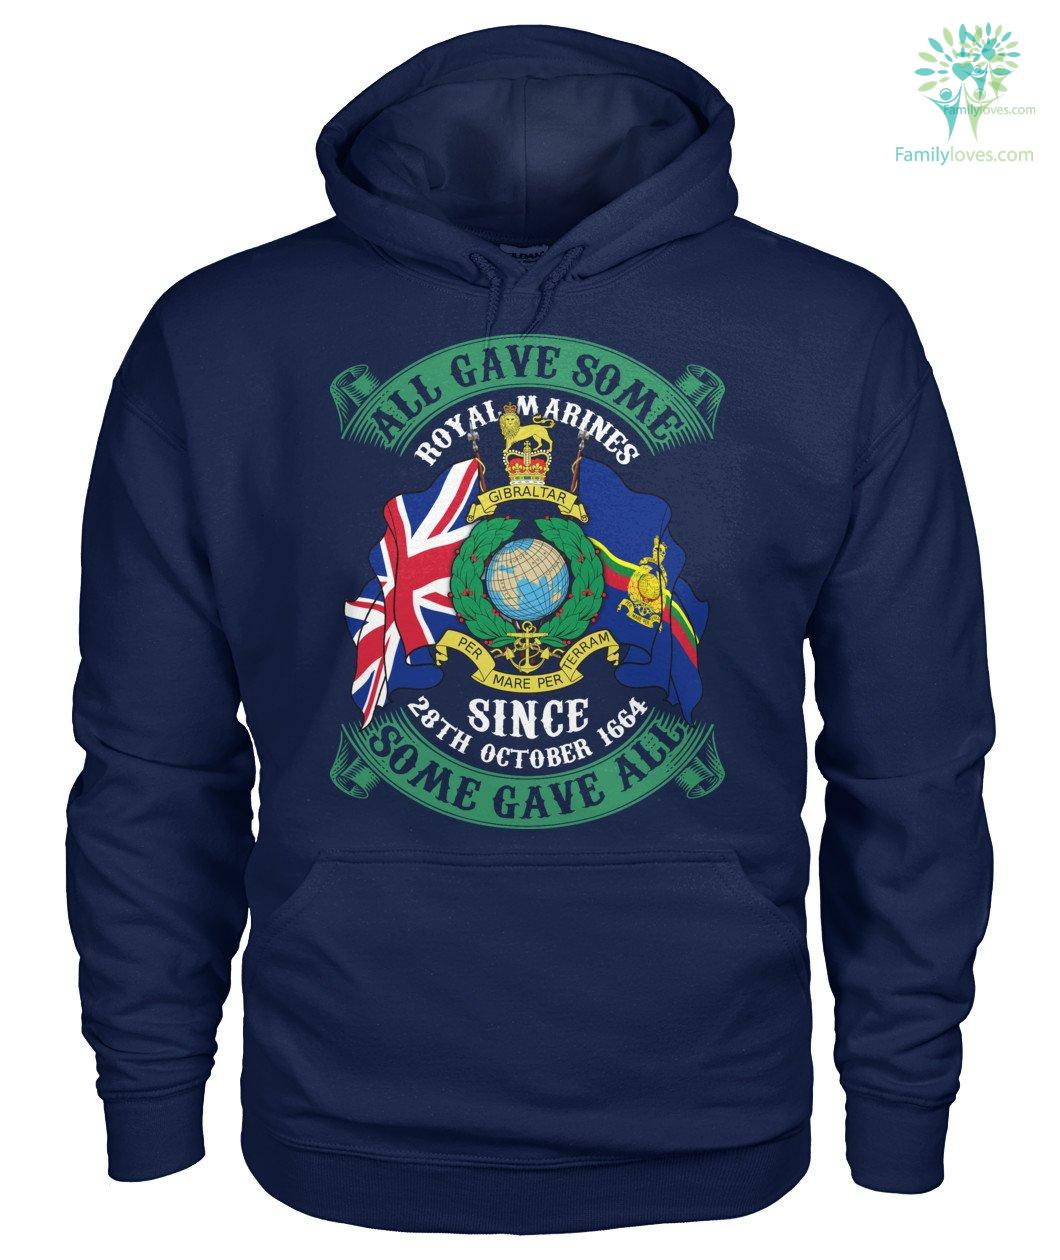 Buy ROYAL MARINES, SINCE 28TH OCTOBER 1664, ALL GAVE SOME SOME GAVE ALL T-SHIRT & HOODIE - Familyloves hoodies t-shirt jacket mug cheapest free shipping 50% off